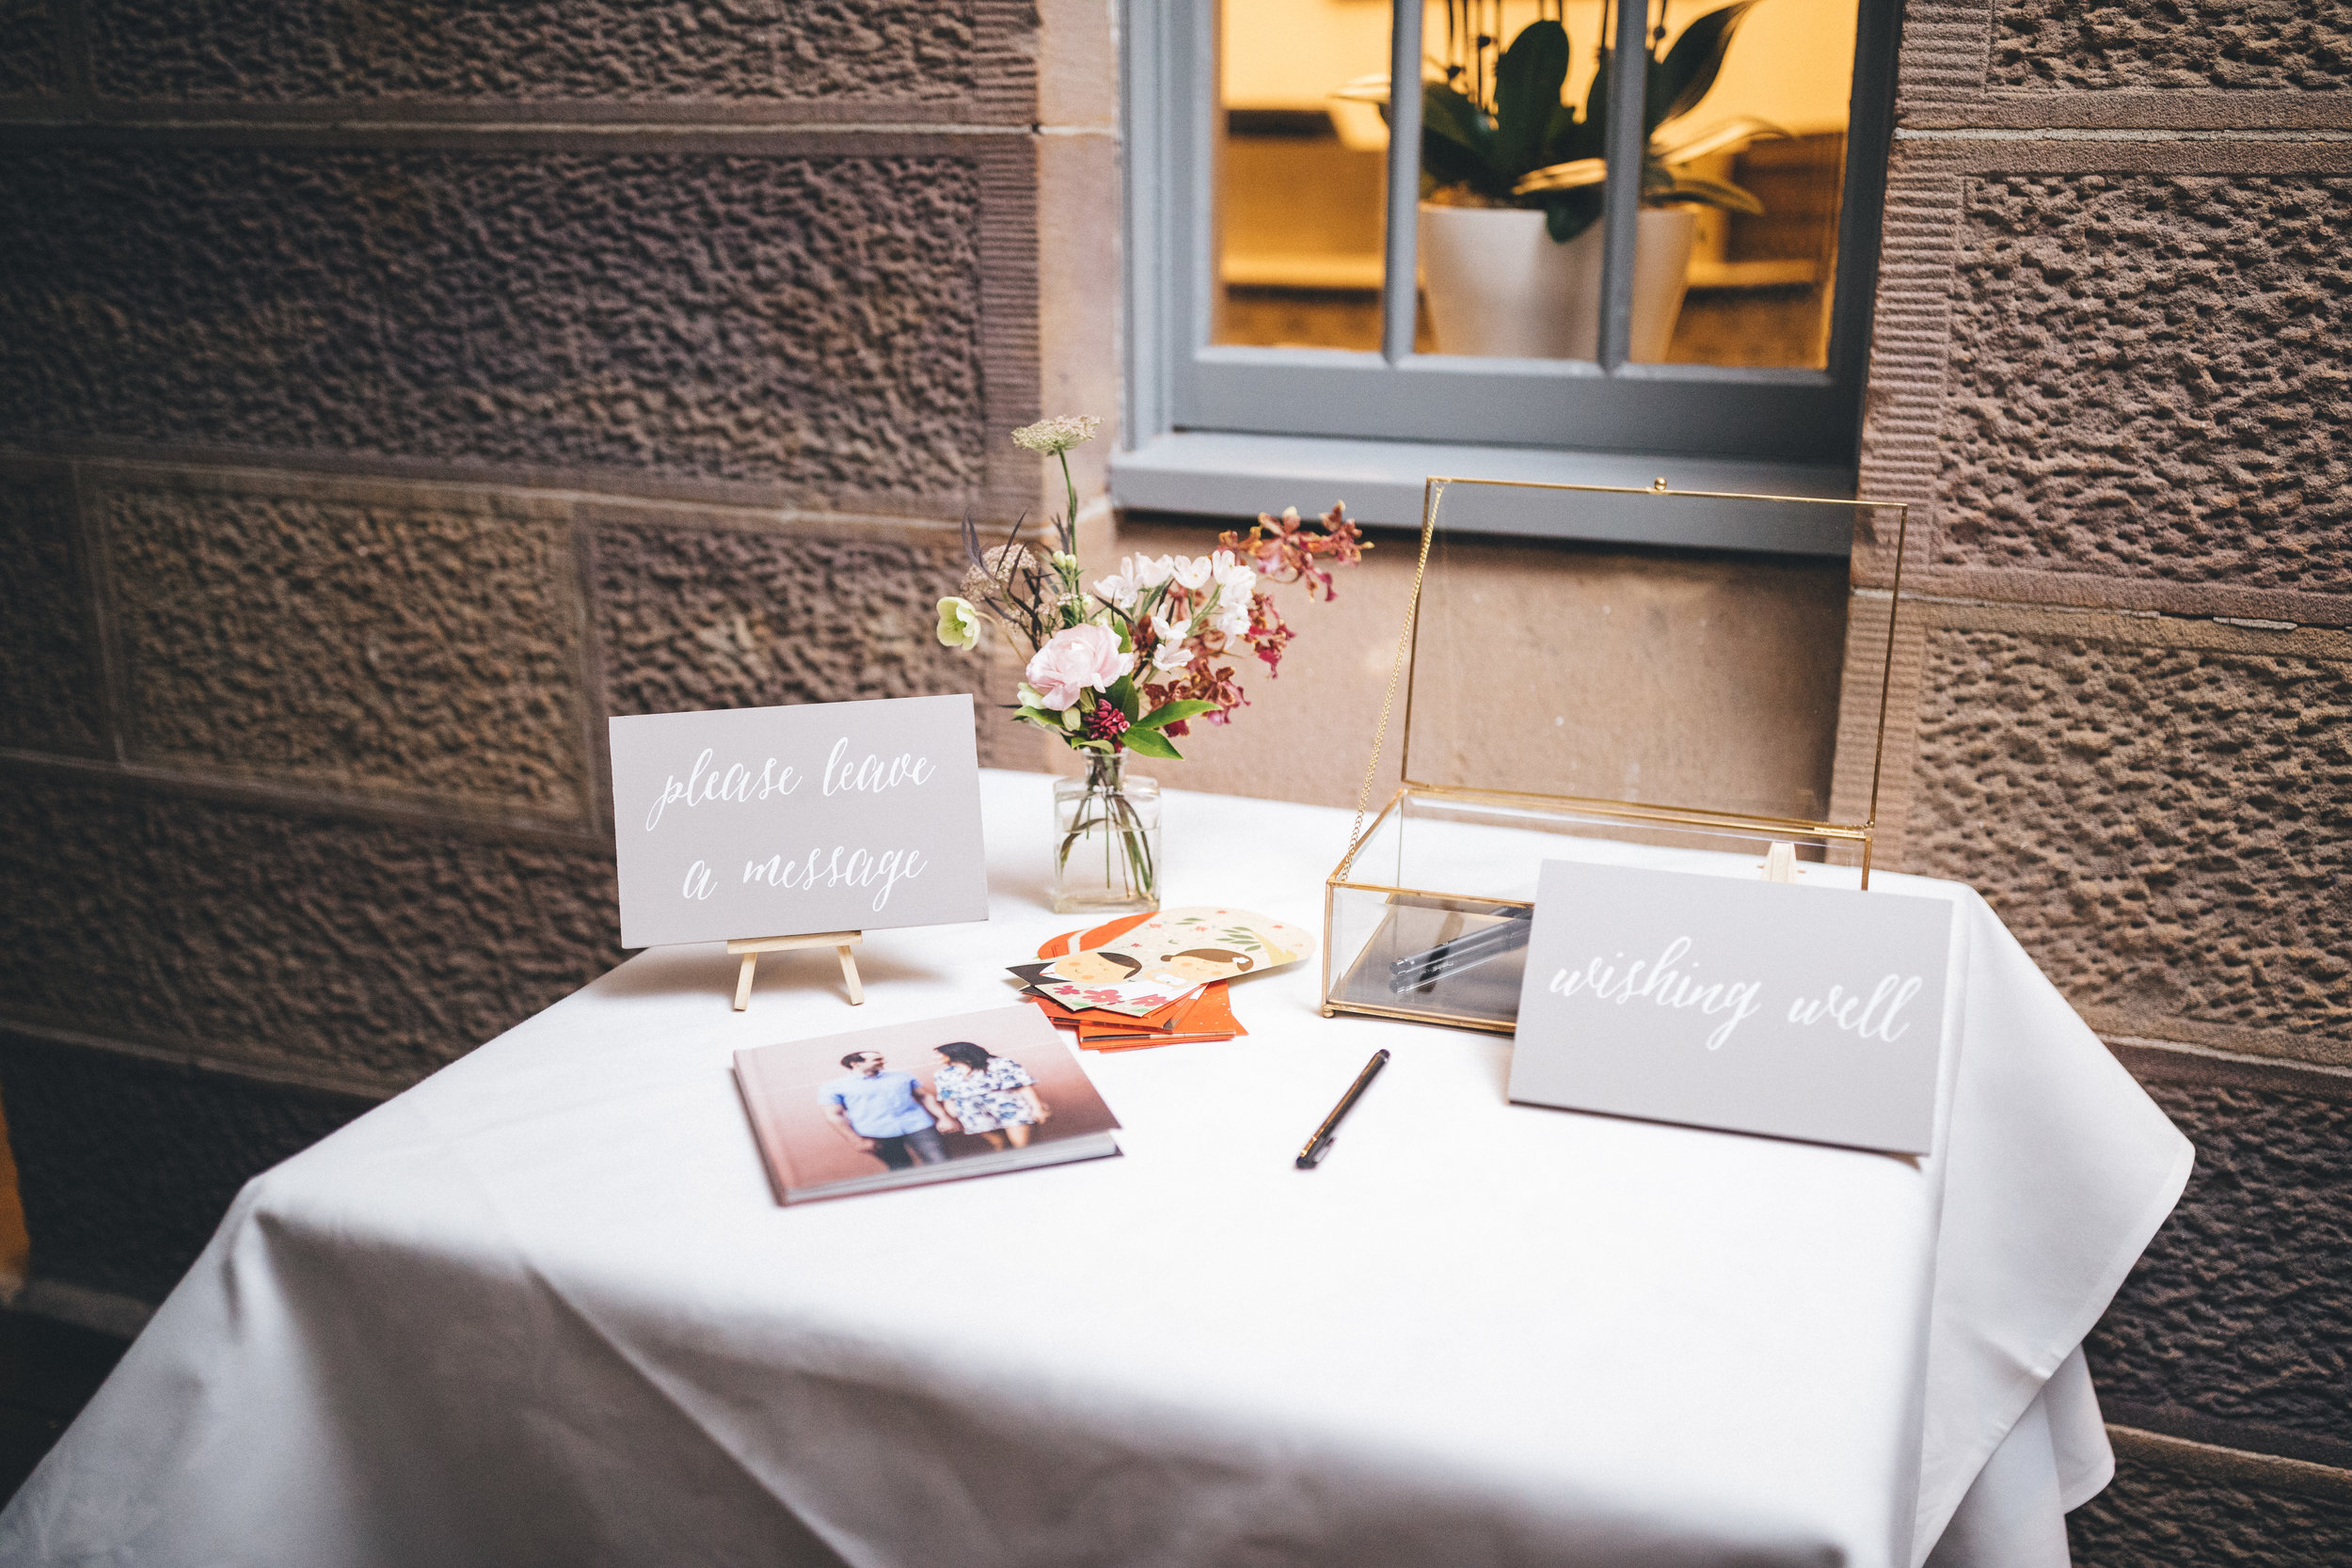 Wishing well / gift table - It's common to have a space set aside for guests to provide gifts, a guest book and/or a wishing well. Add some signage and a touch of decor to pretty it up and draw guests towards it.